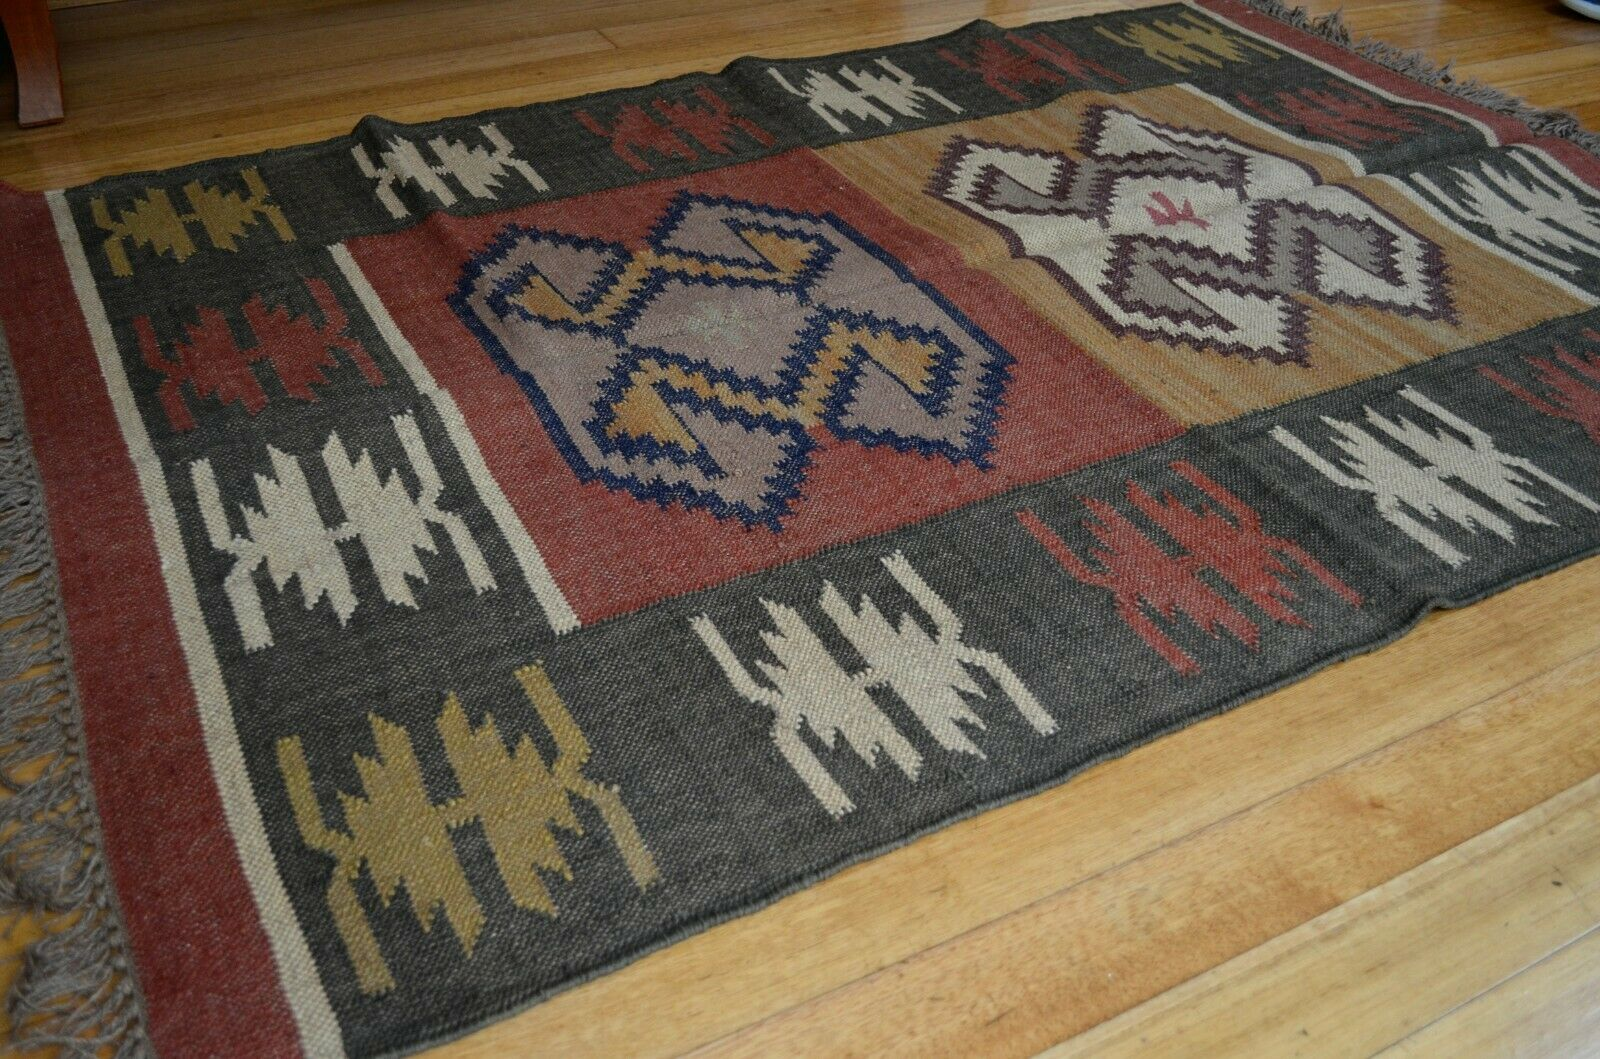 Kilim Rug Indian Jute Wool Hand Knotted Geometric 120x180cm 4x6ft KR1848